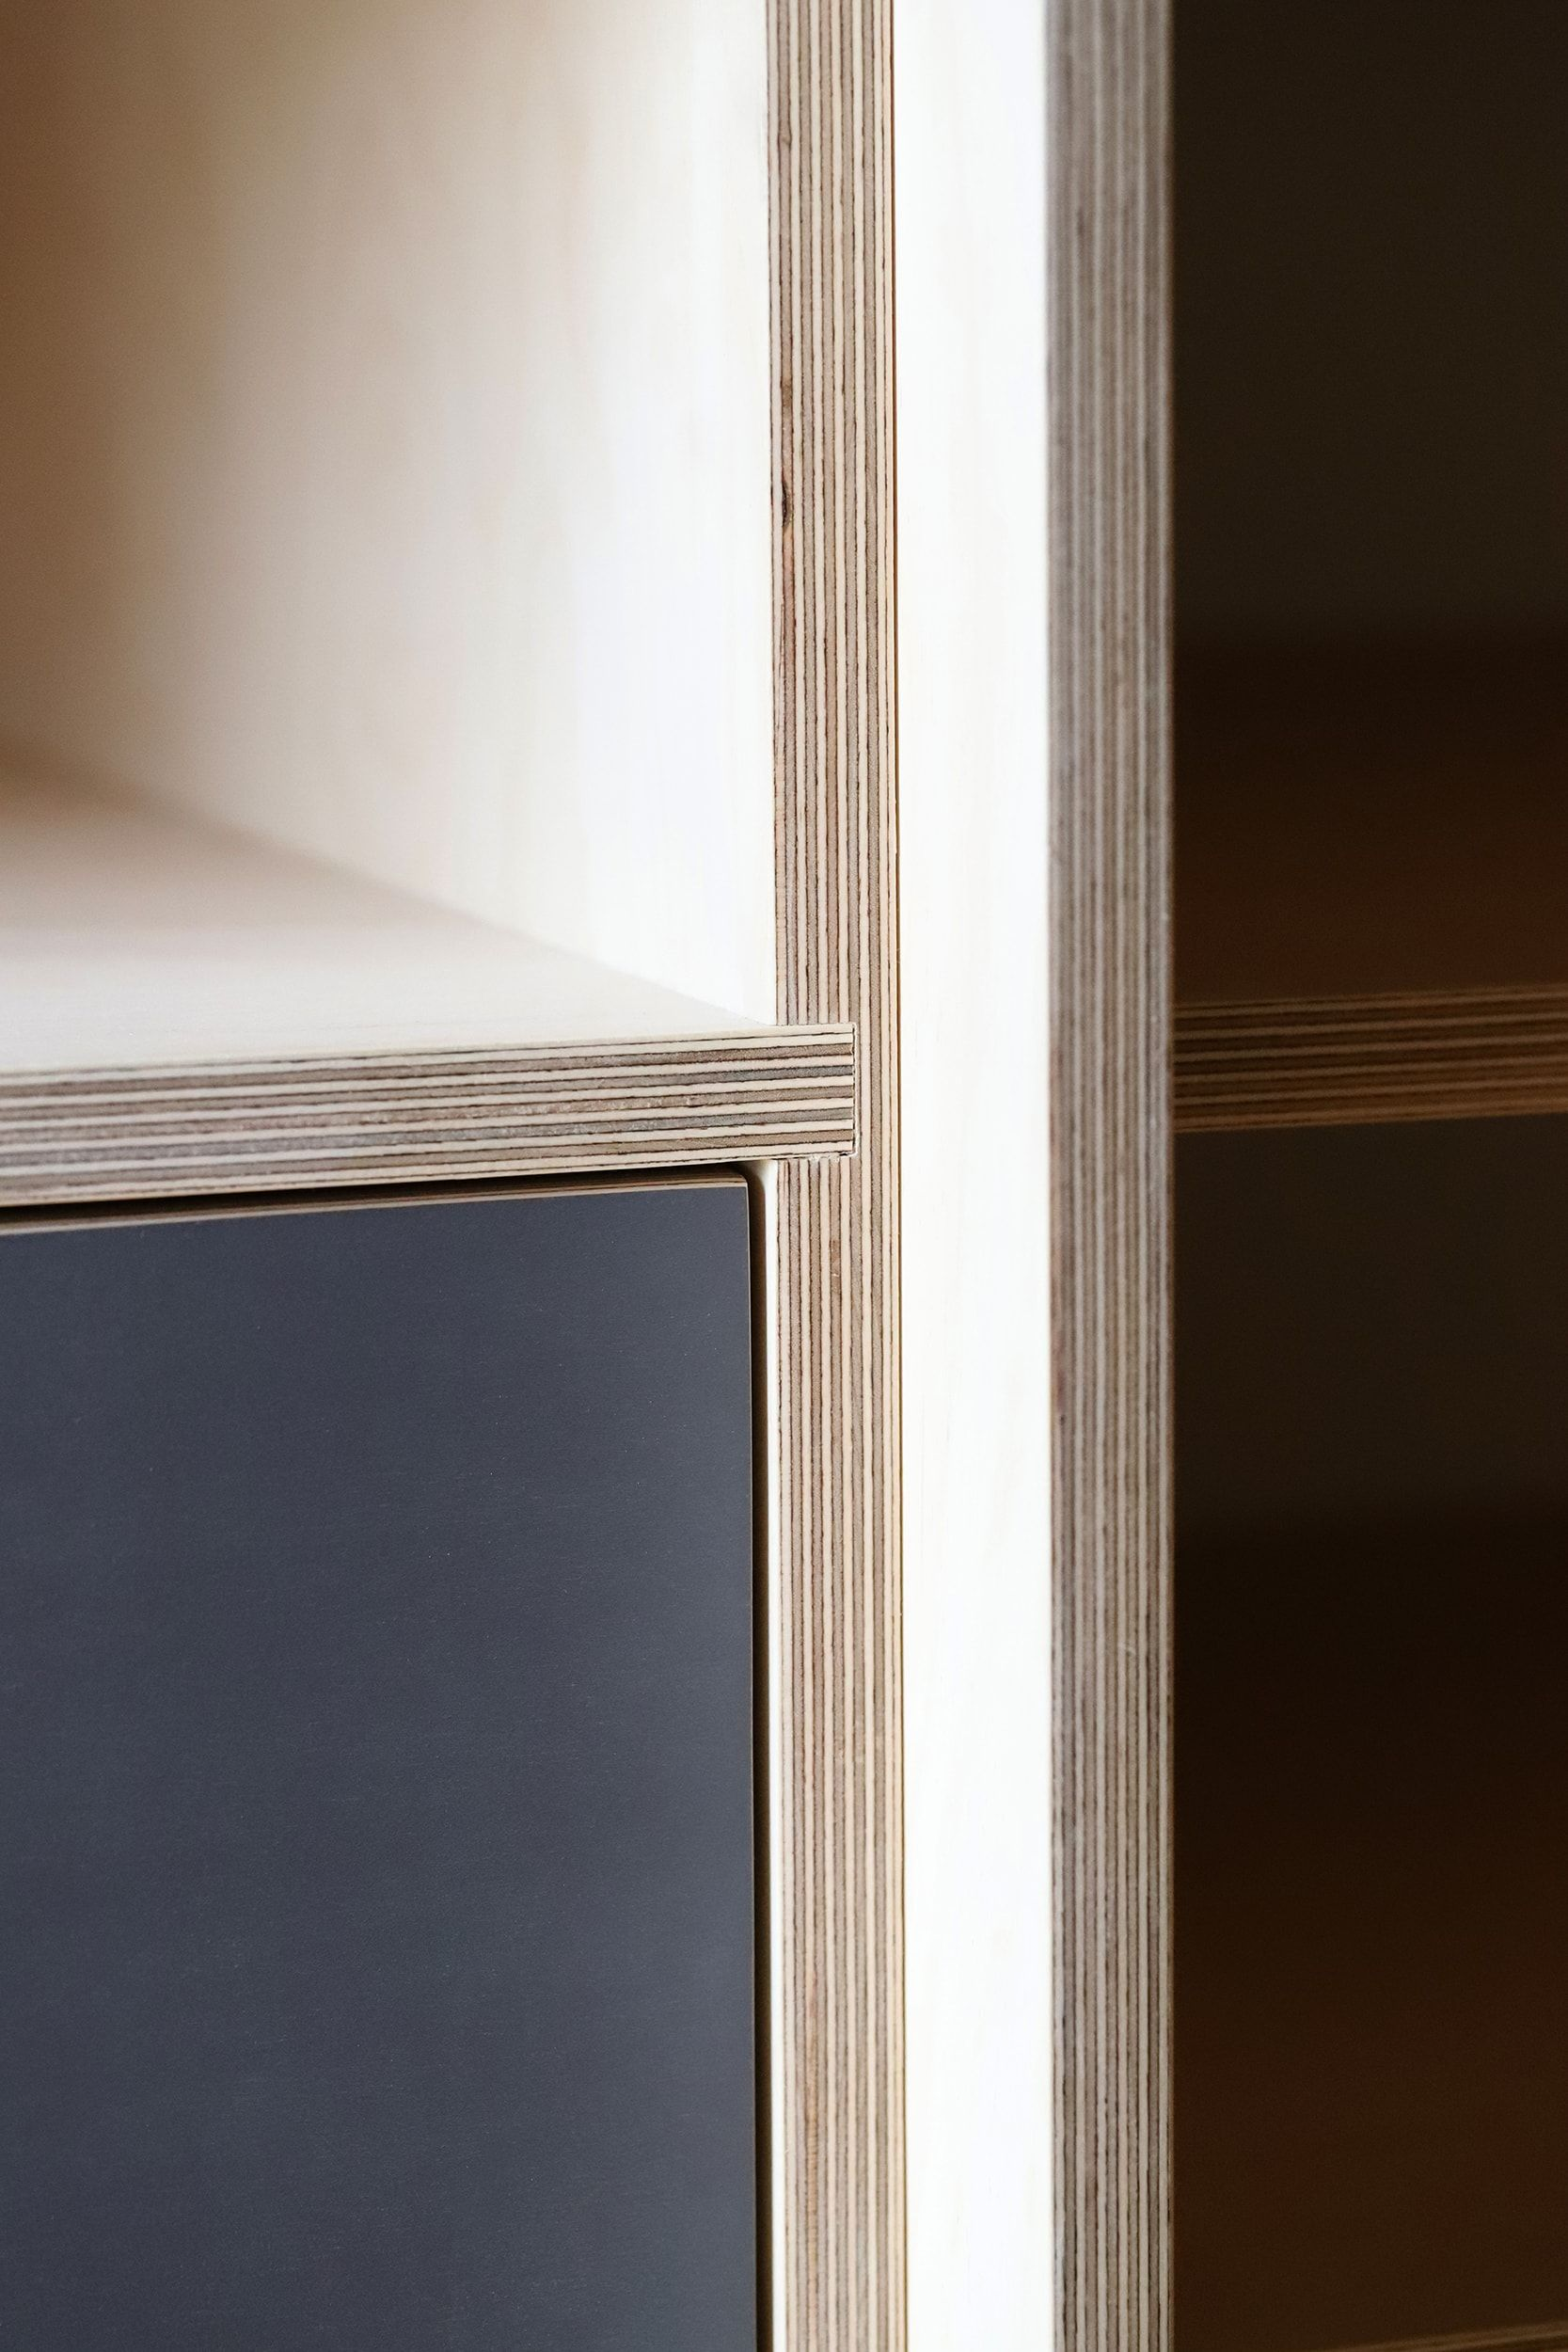 Joinery details from Samir's bespoke plywood by Lozi in his home in Bexley